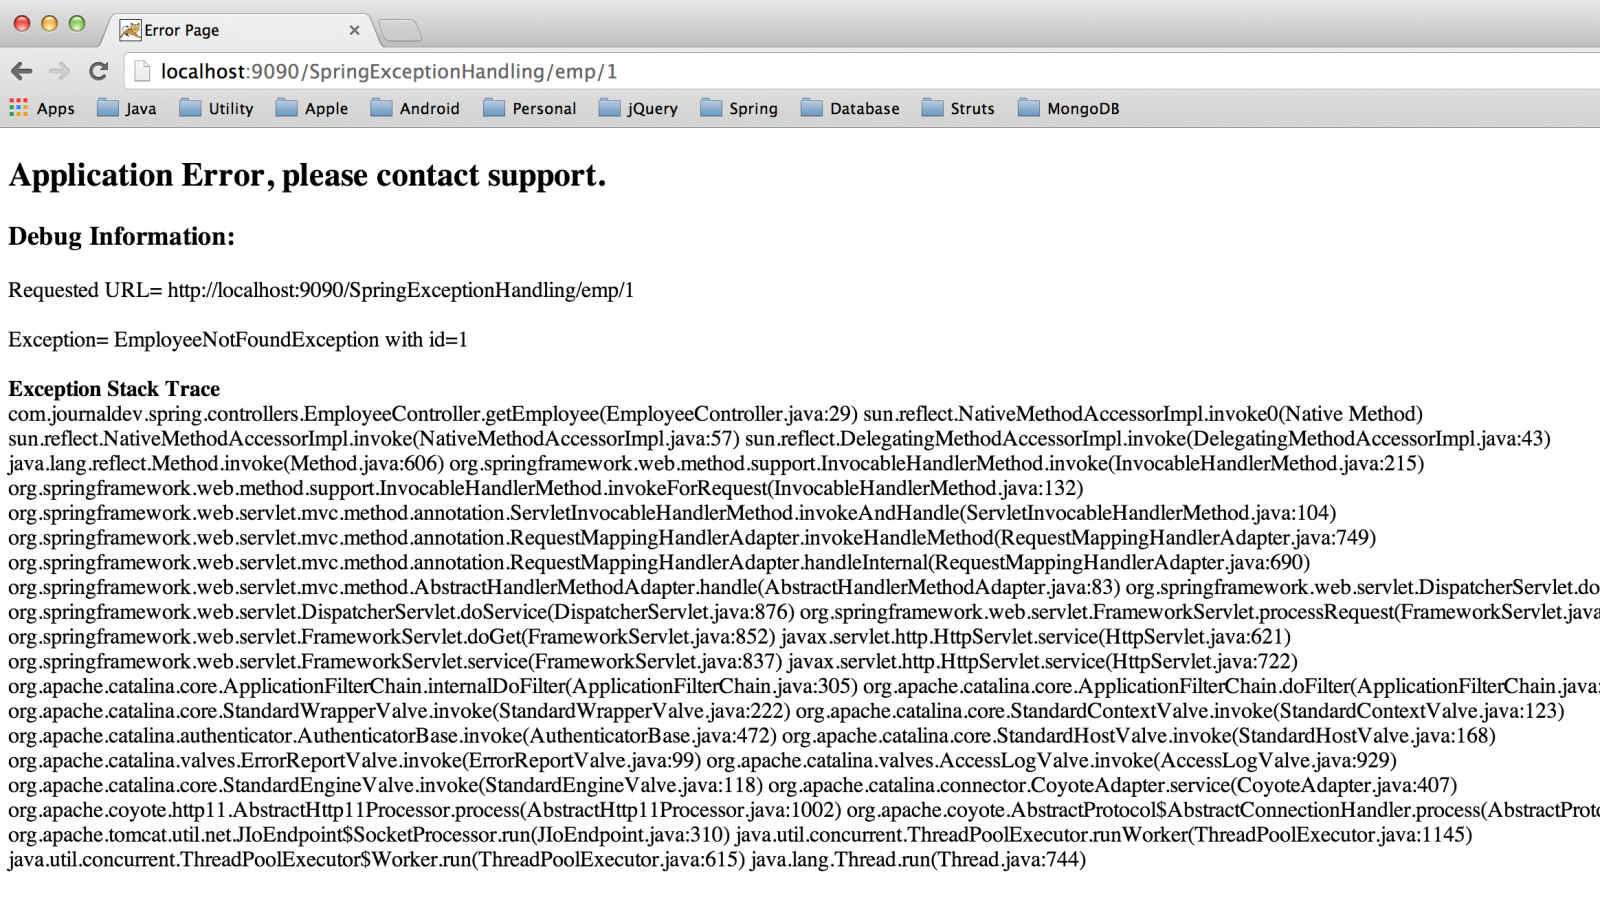 Spring MVC Exception Handling - @ControllerAdvice